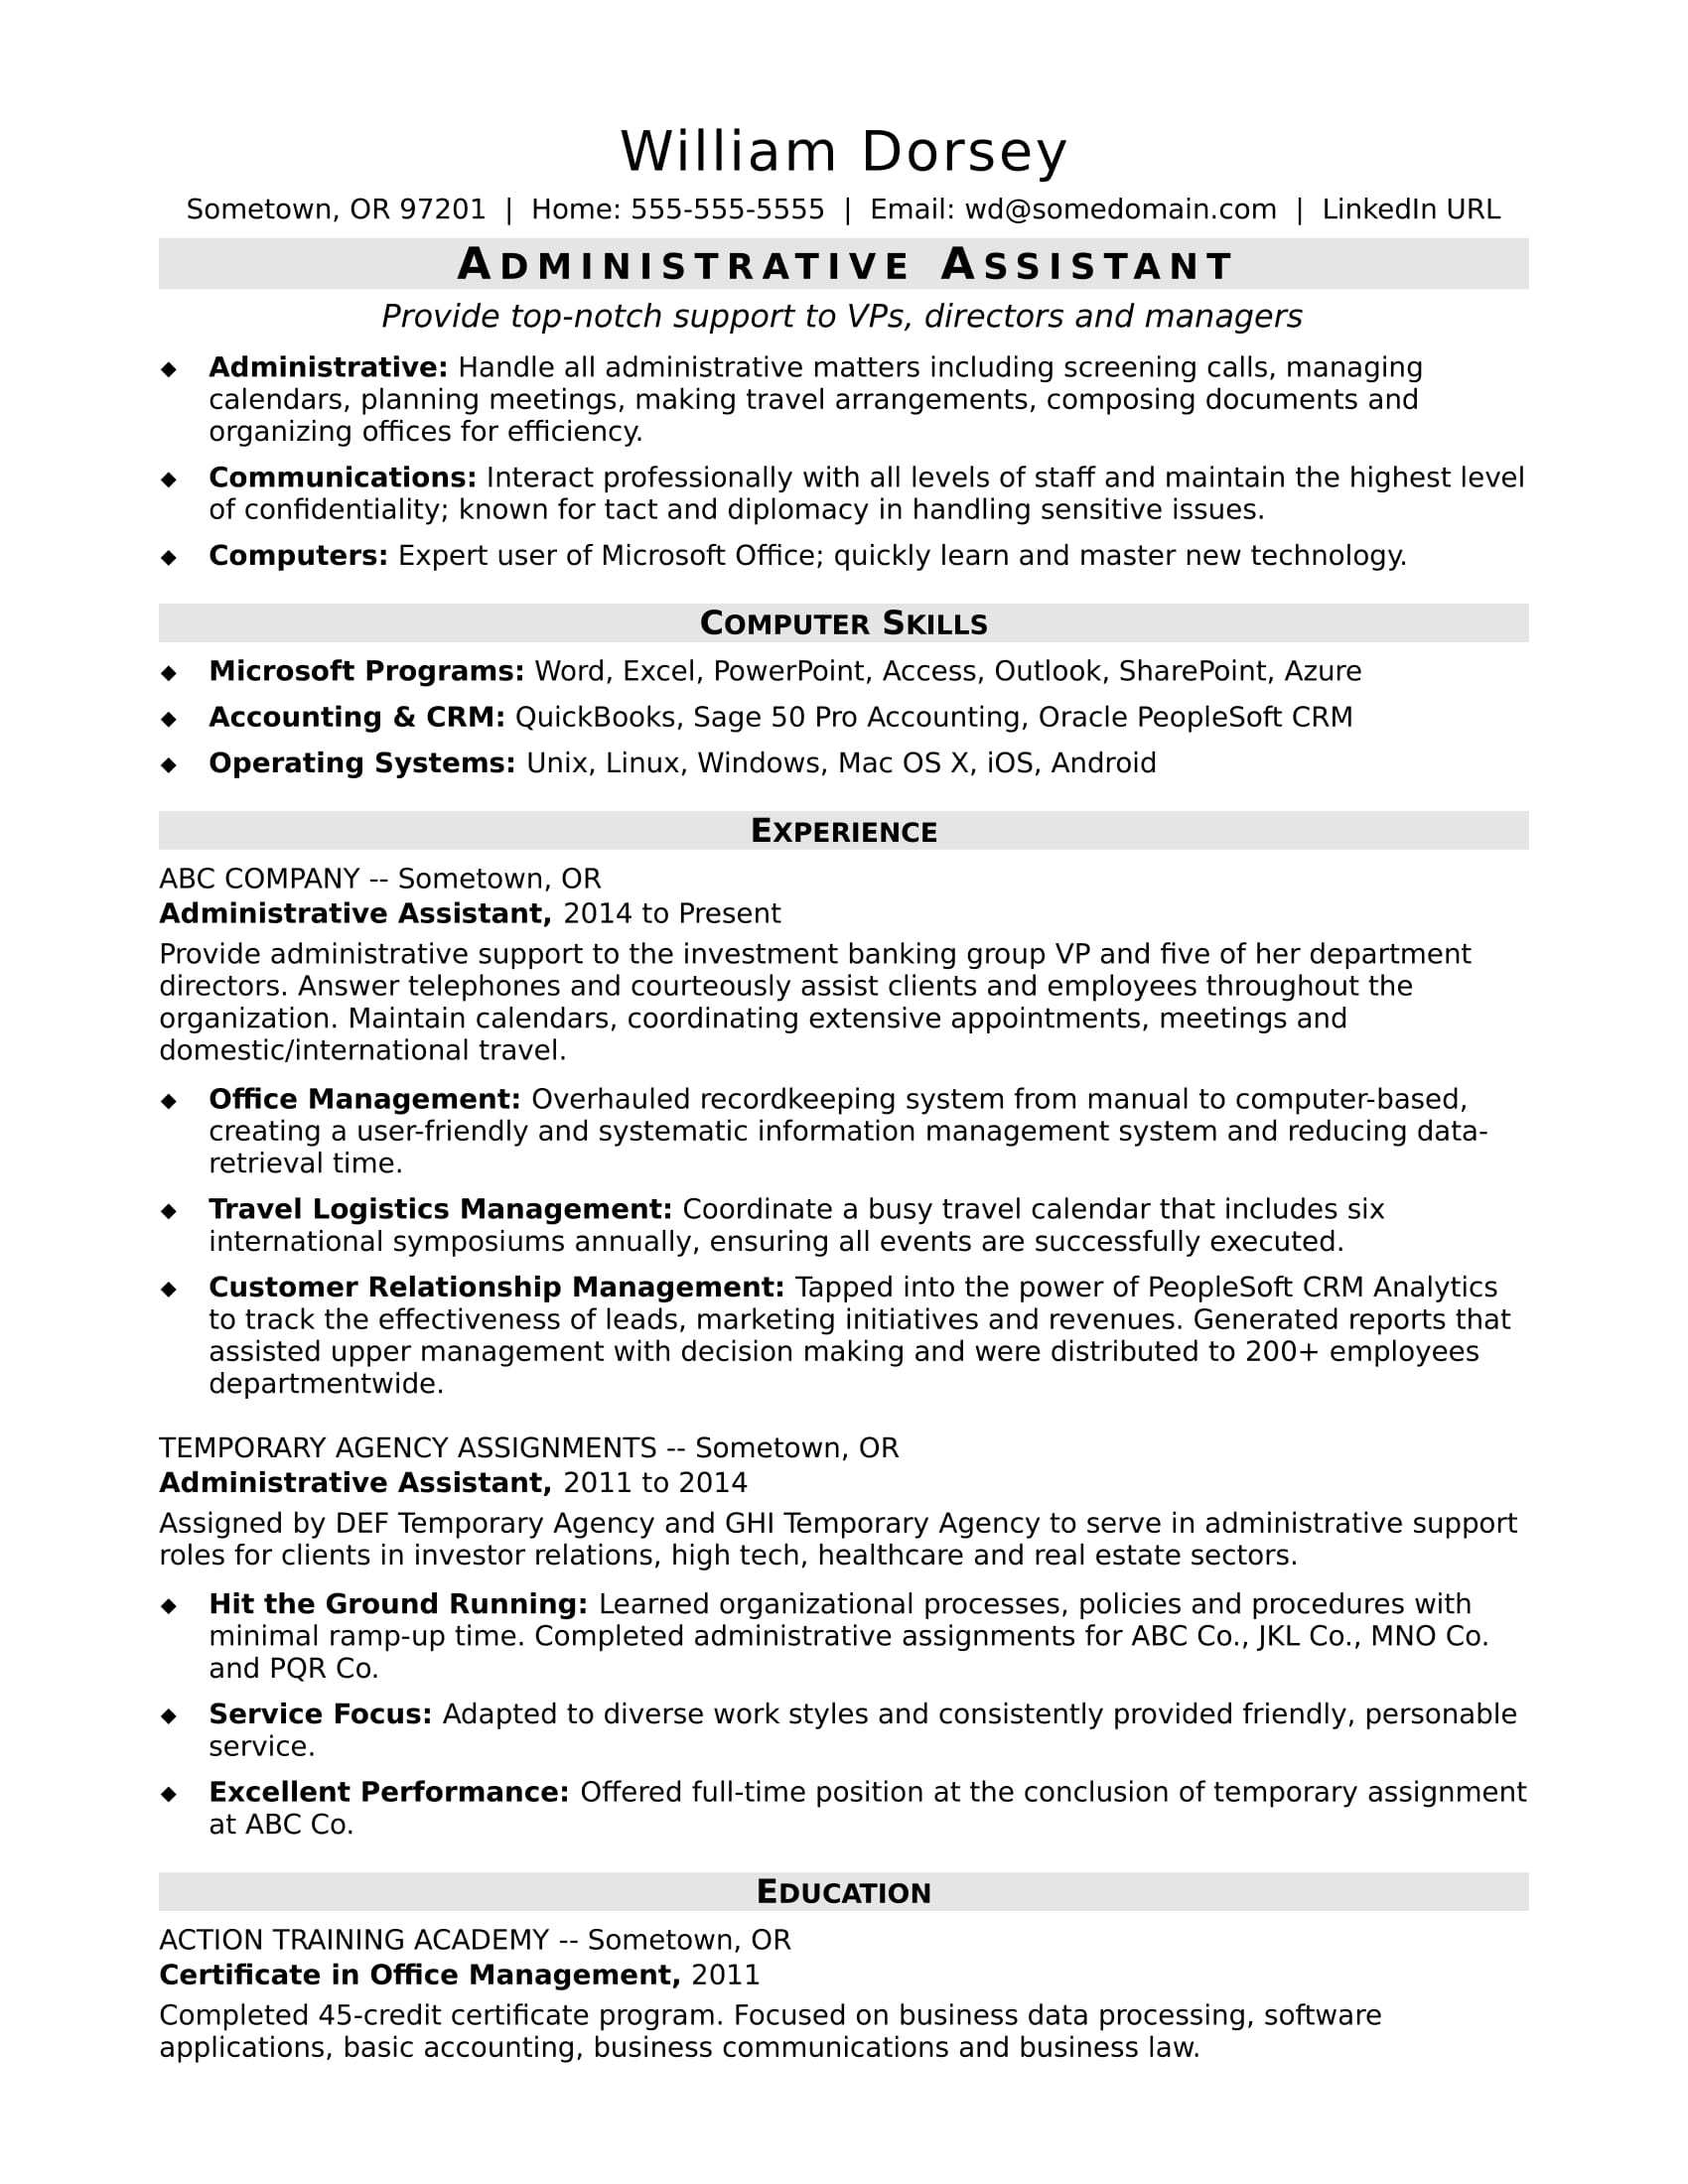 Administrative Assistant Midlevel Administrative Assistant Resume Sample Monster